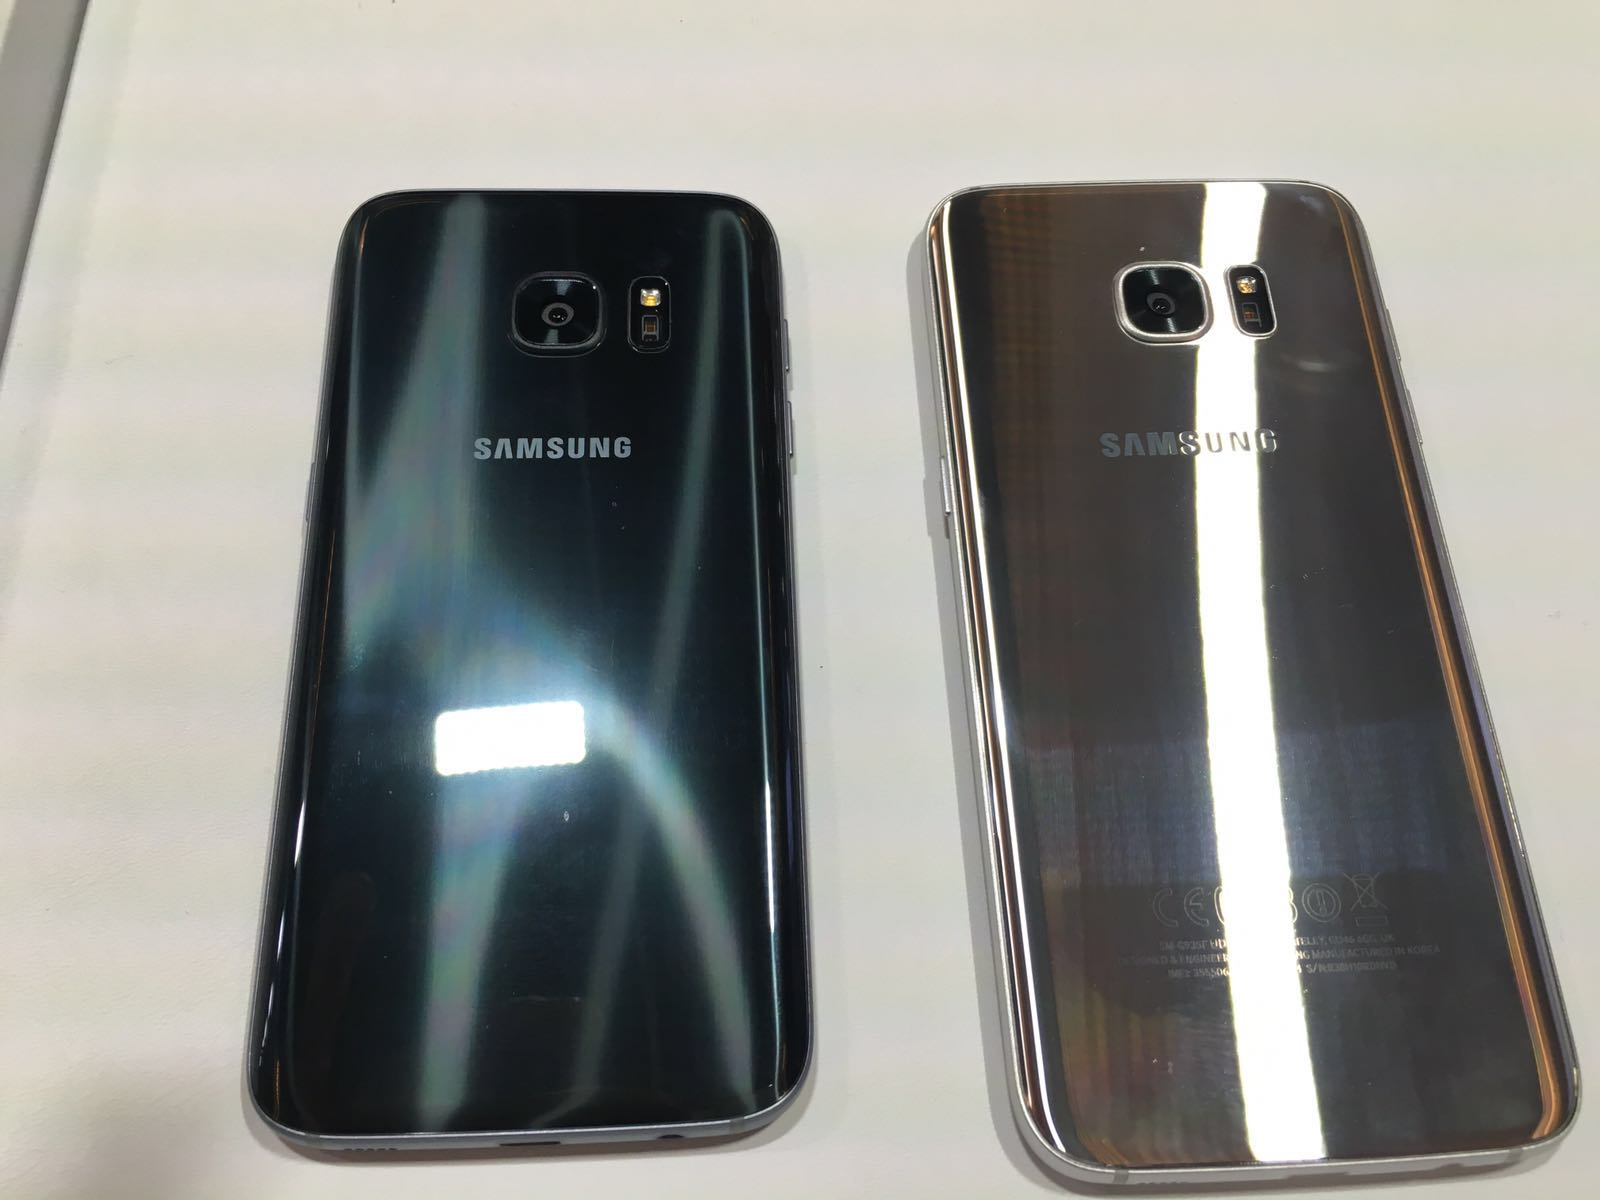 Samsung Galaxy S7 and S7 Edge_2